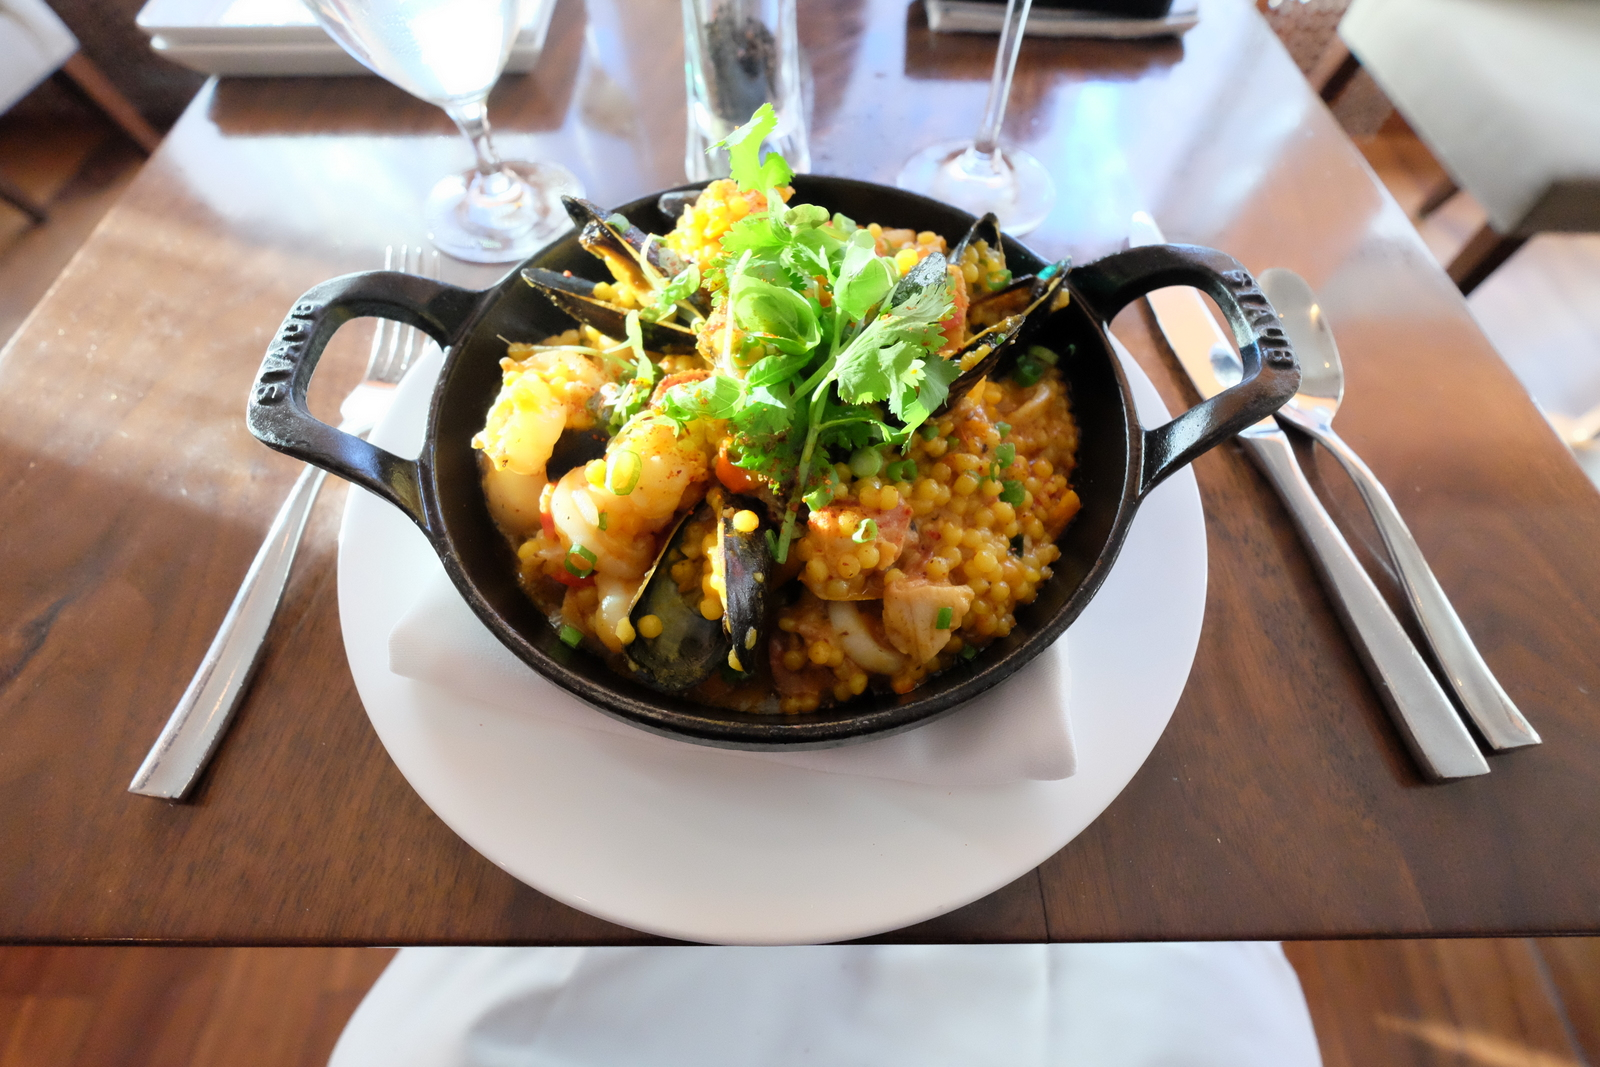 Located at the posh Conrad New York, Atrio restaurant serves up great paella and outrageously good meatballs. JIM BYERS PHOTO